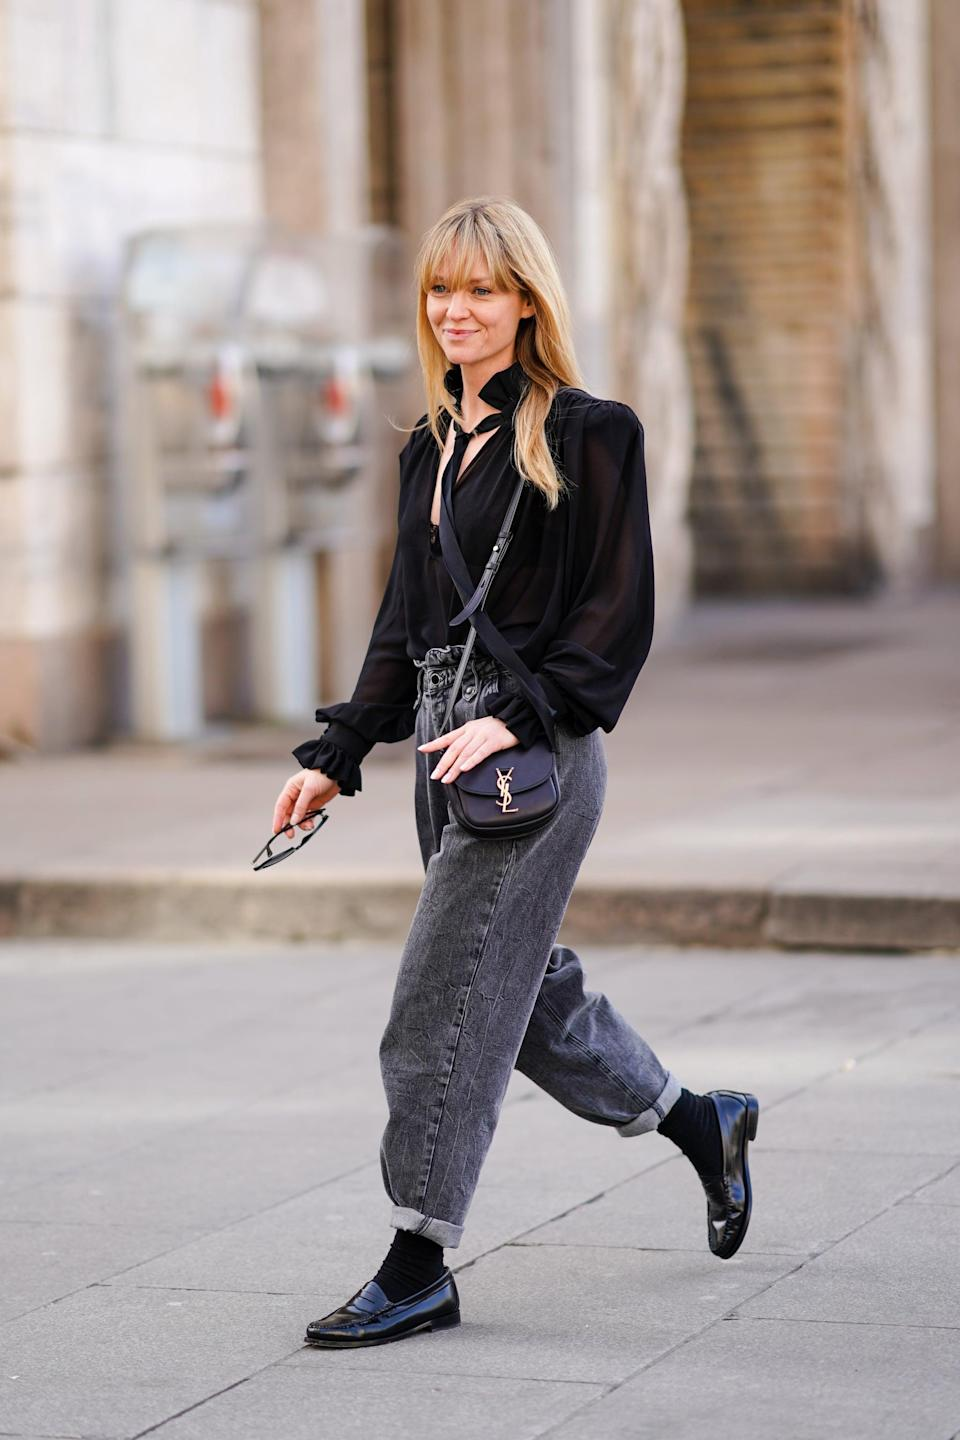 <p>An all-black outfit with baggy jeans can look preppy and polished with a blouse and loafers (with socks!) in the mix. </p>